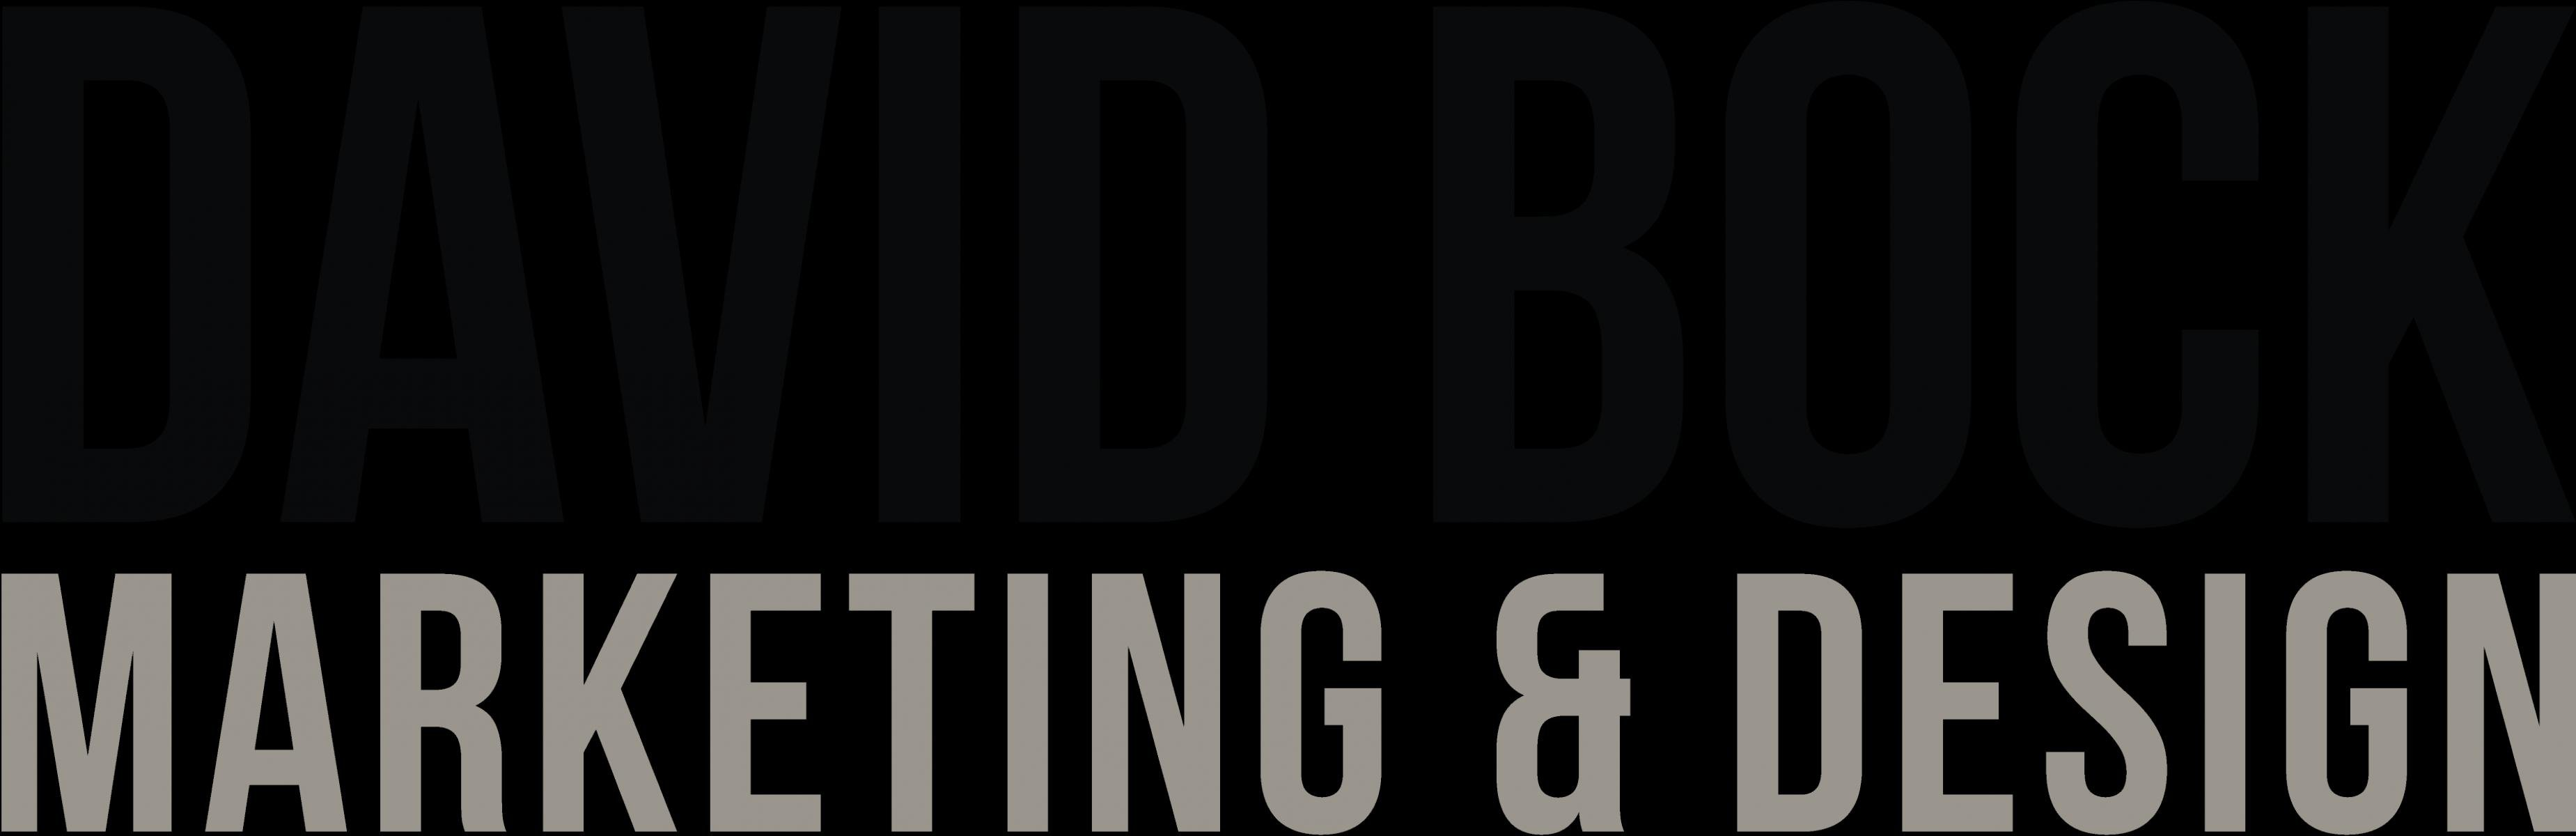 David Bock Marketing & Design Logo